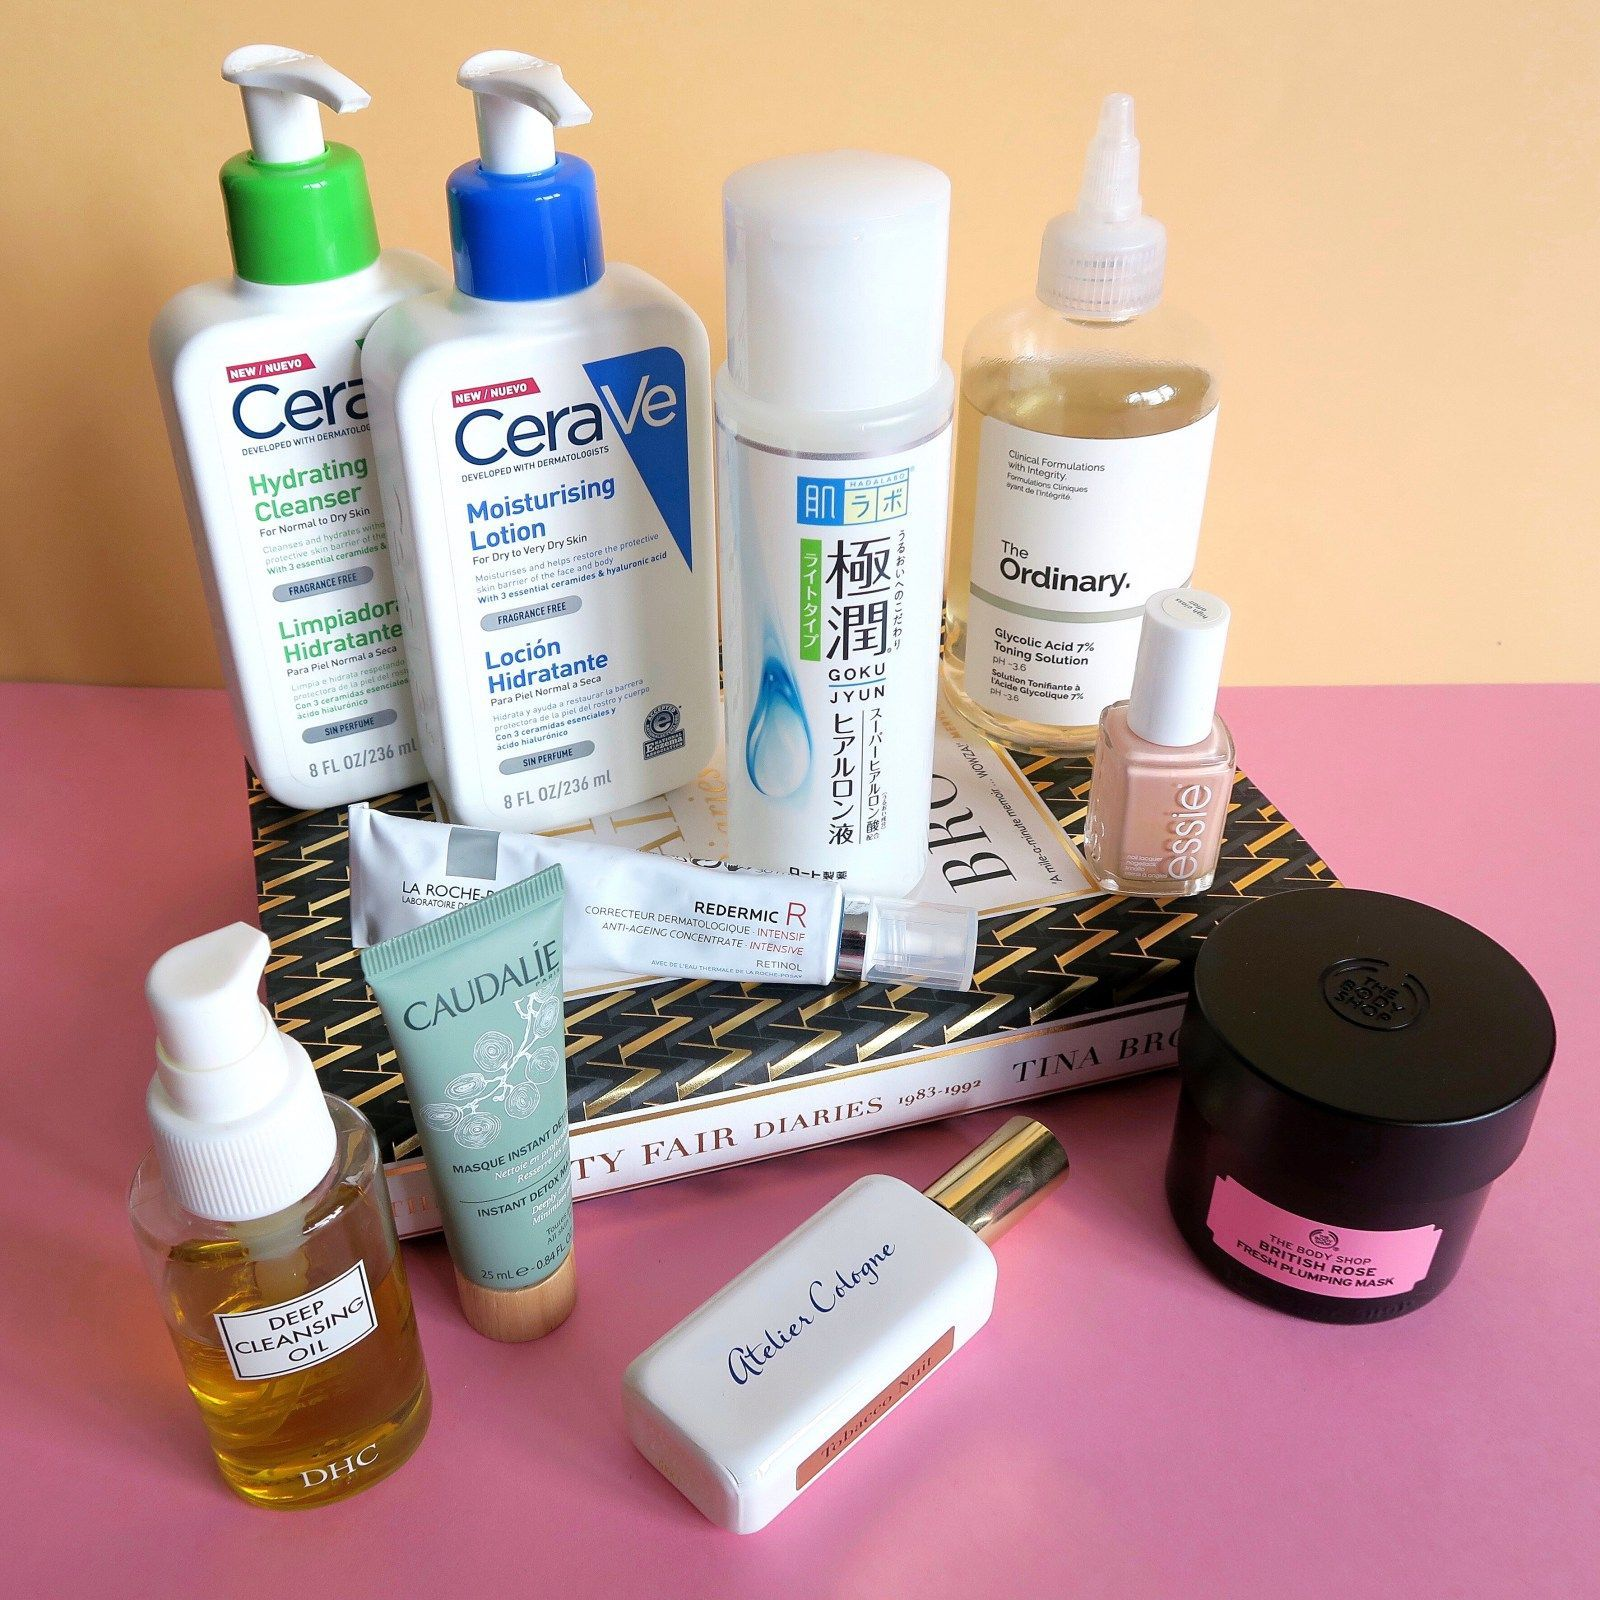 My current skincare routine Products for rosacea